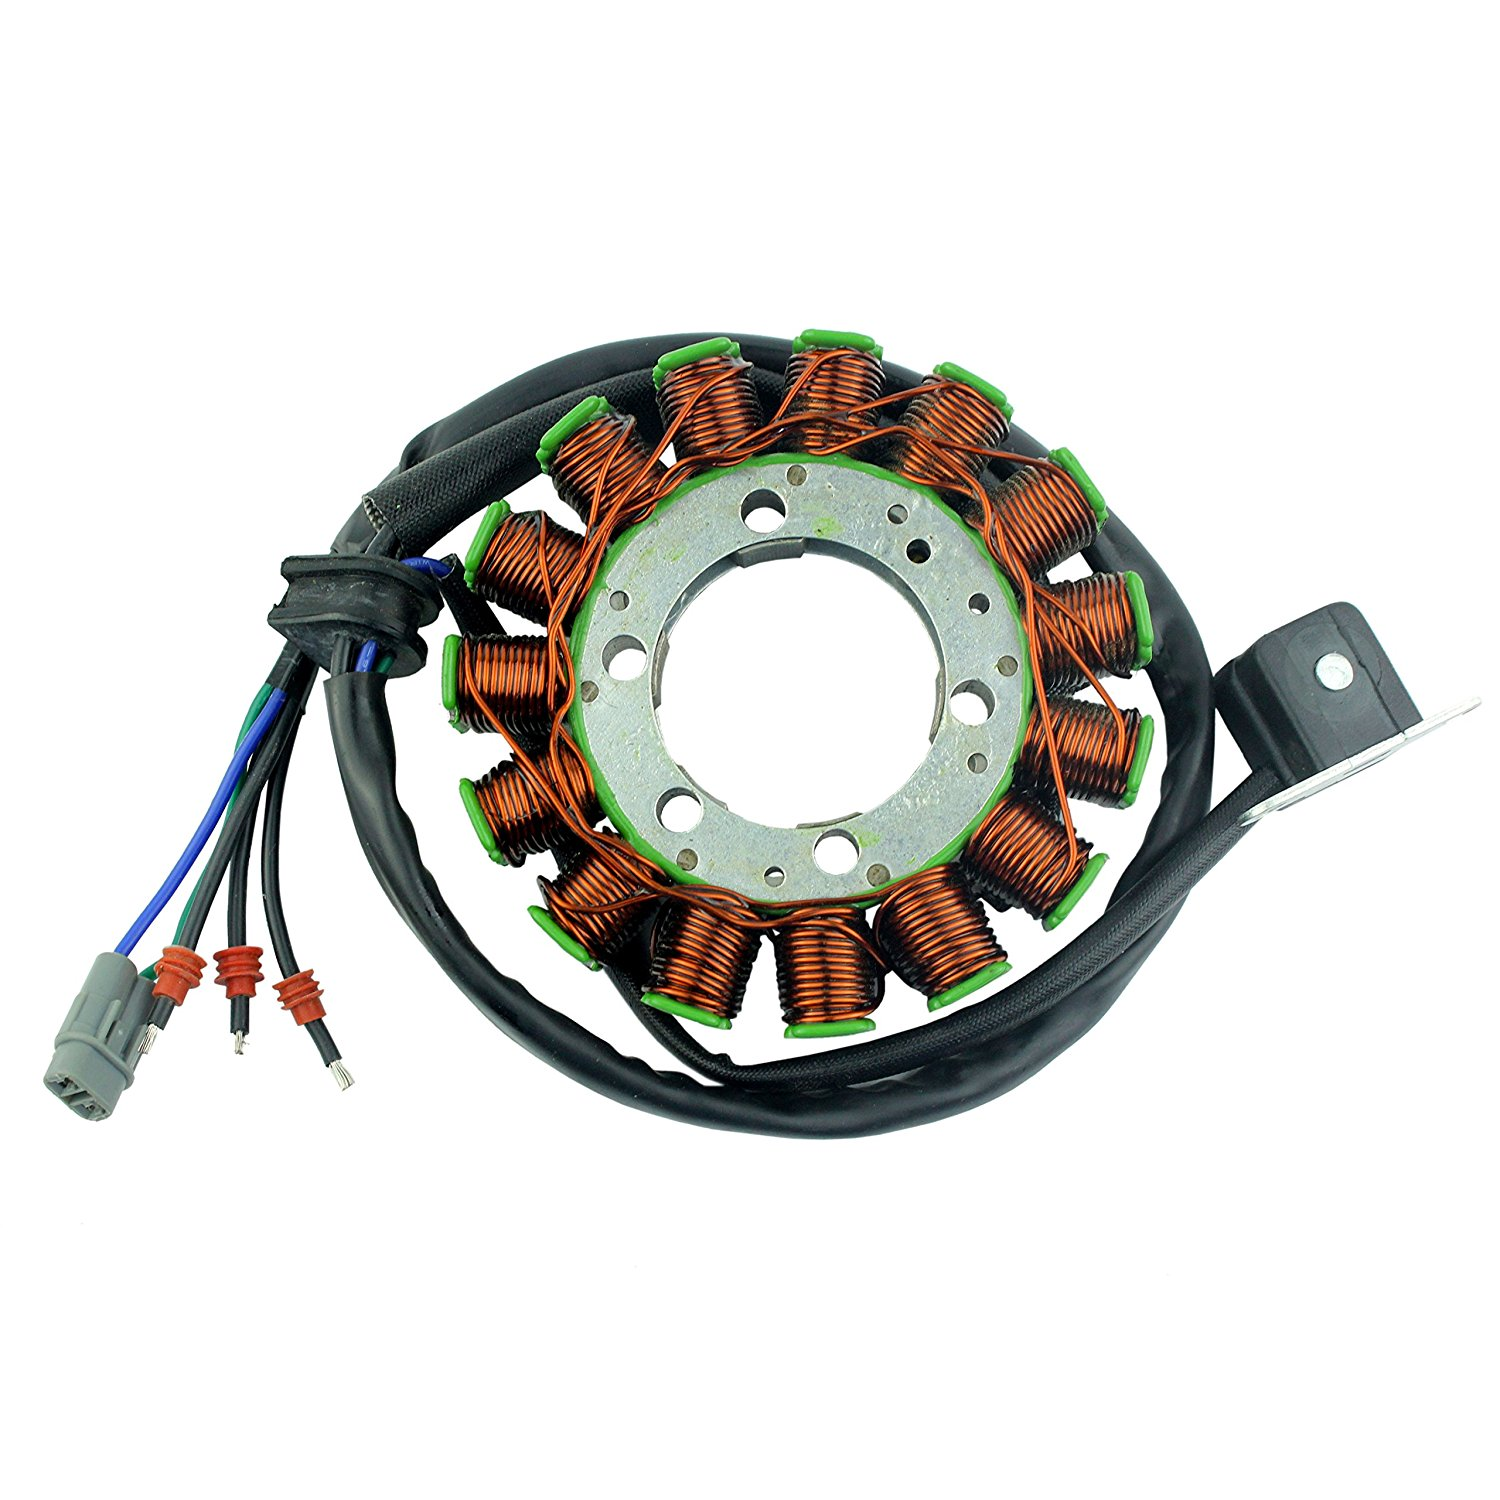 Stator for Suzuki LTZ 400 Quadsport Z400 2009-2014